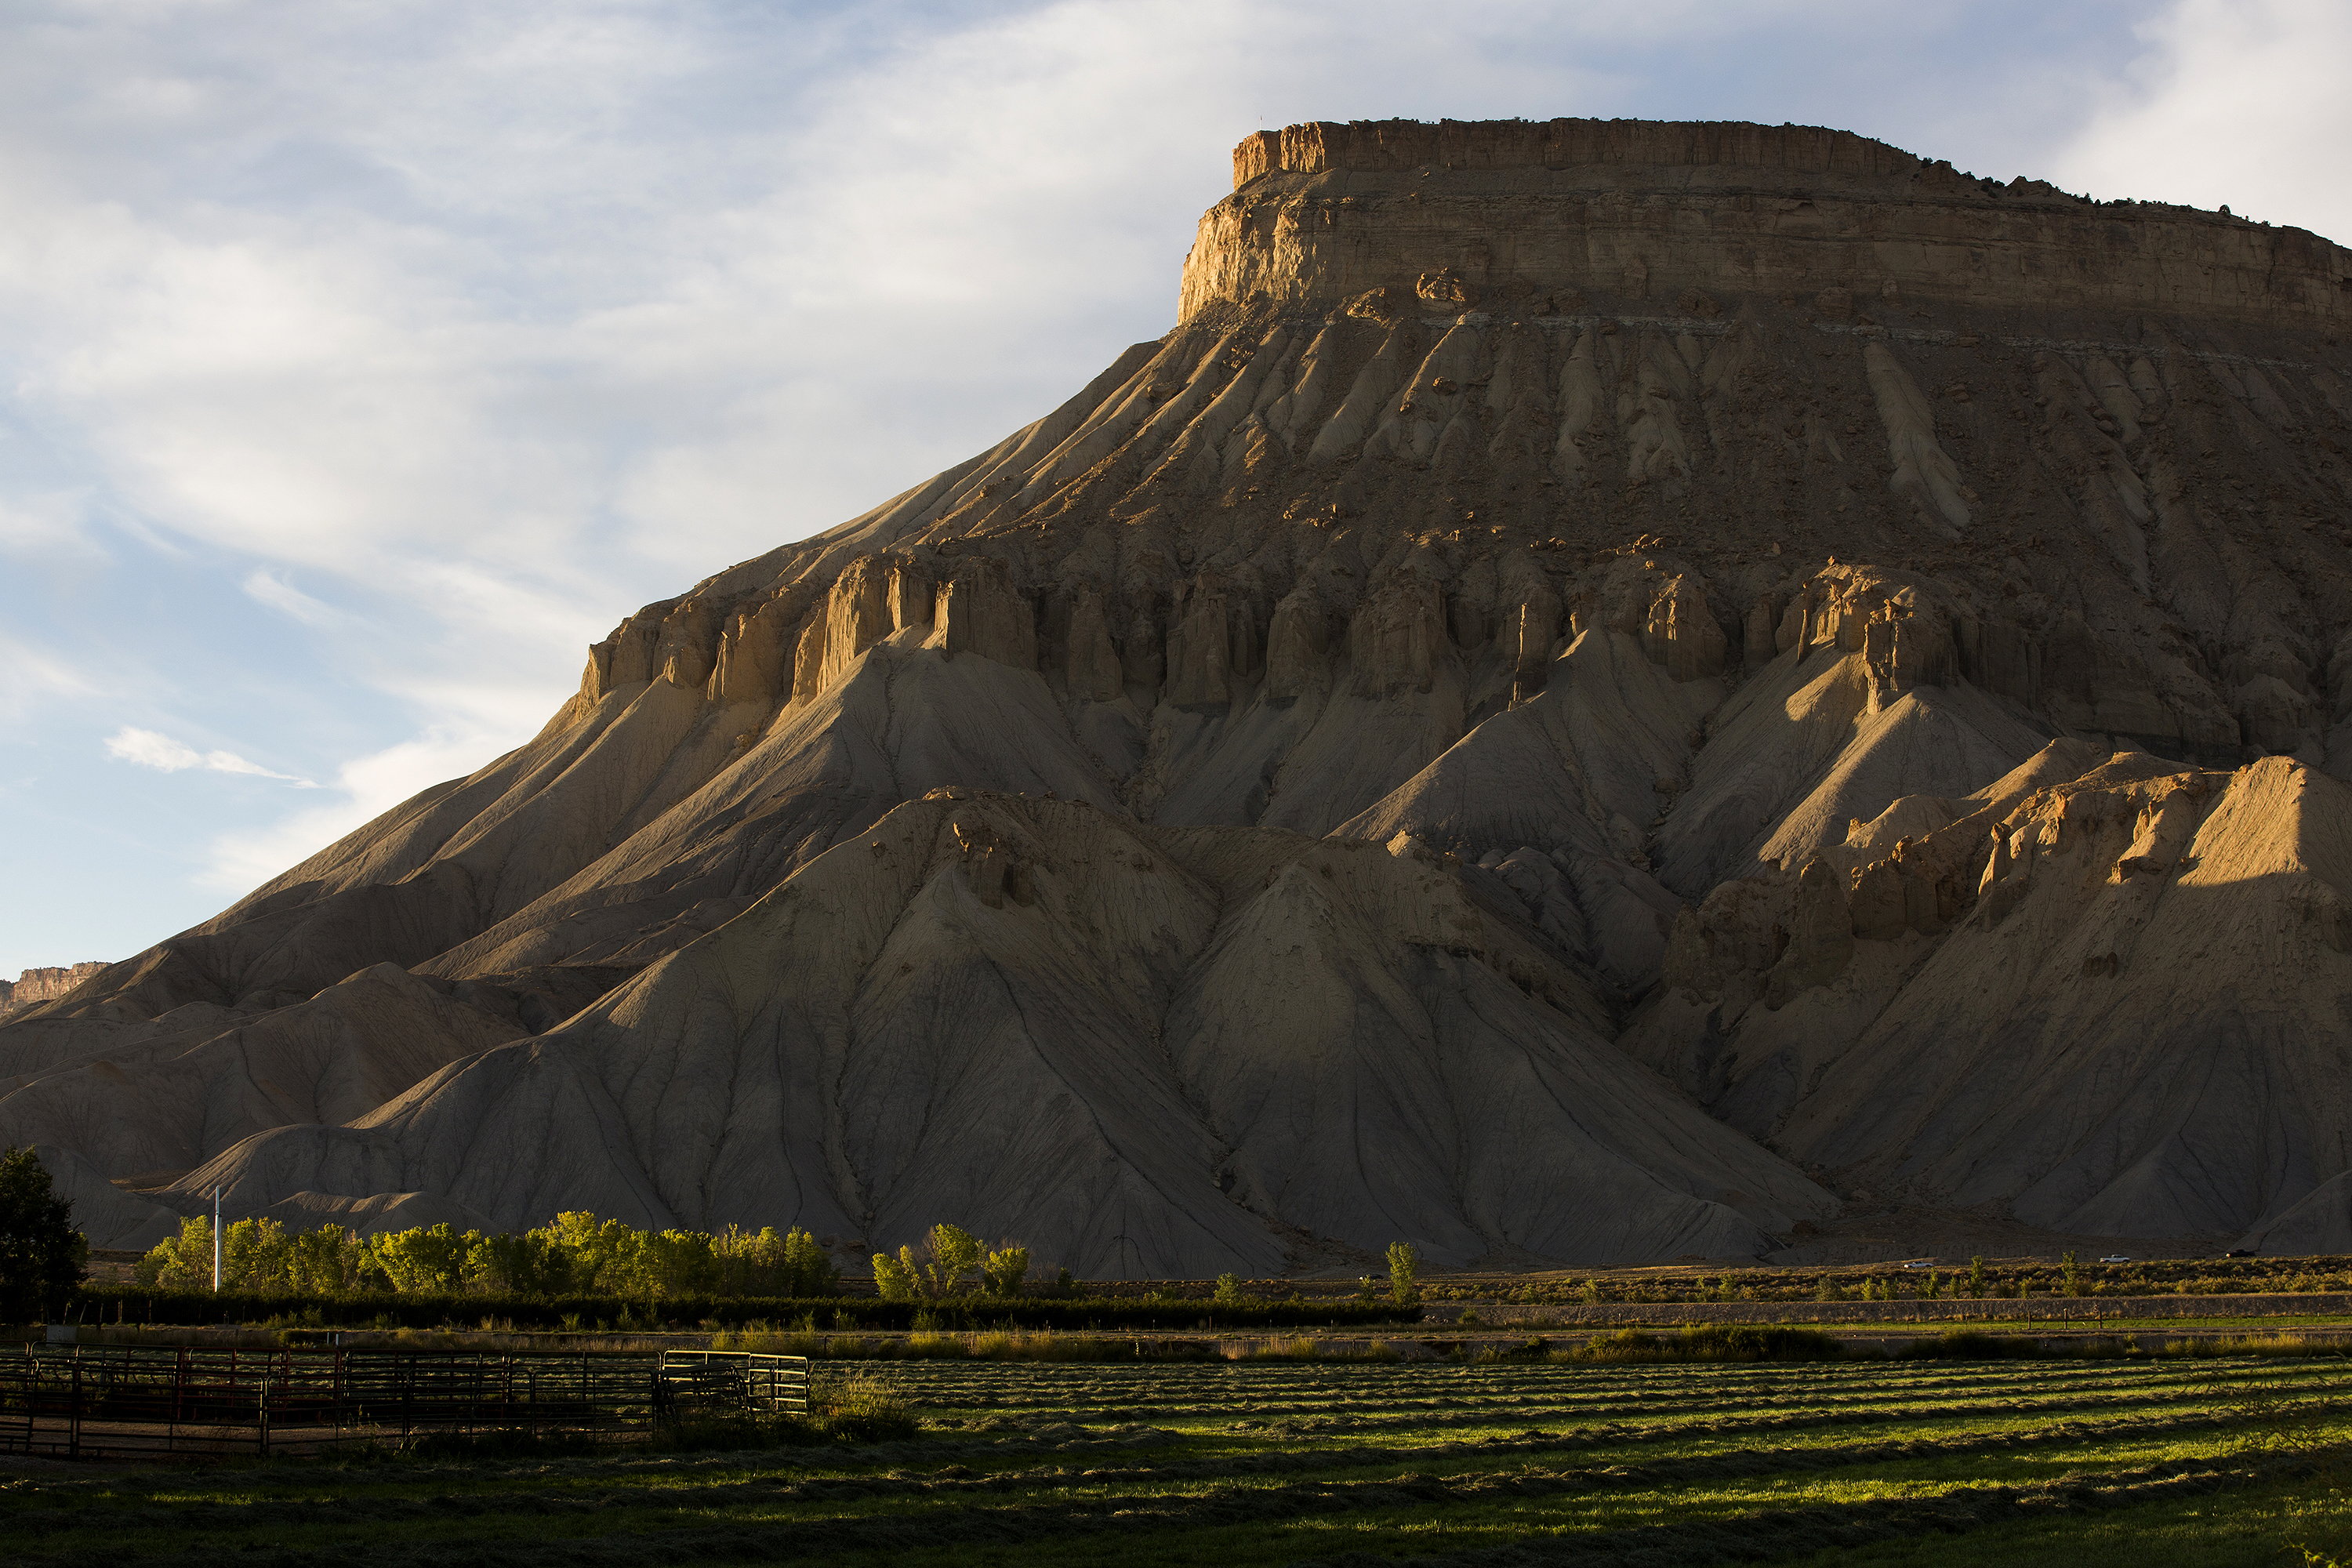 The arid Book Cliffs dominate the view from Palisade and Grand Junction. The highest point on the iconic geologic formation is Mt. Garfield. This photo was made in October looking across freshly cut hayfields from G Road.